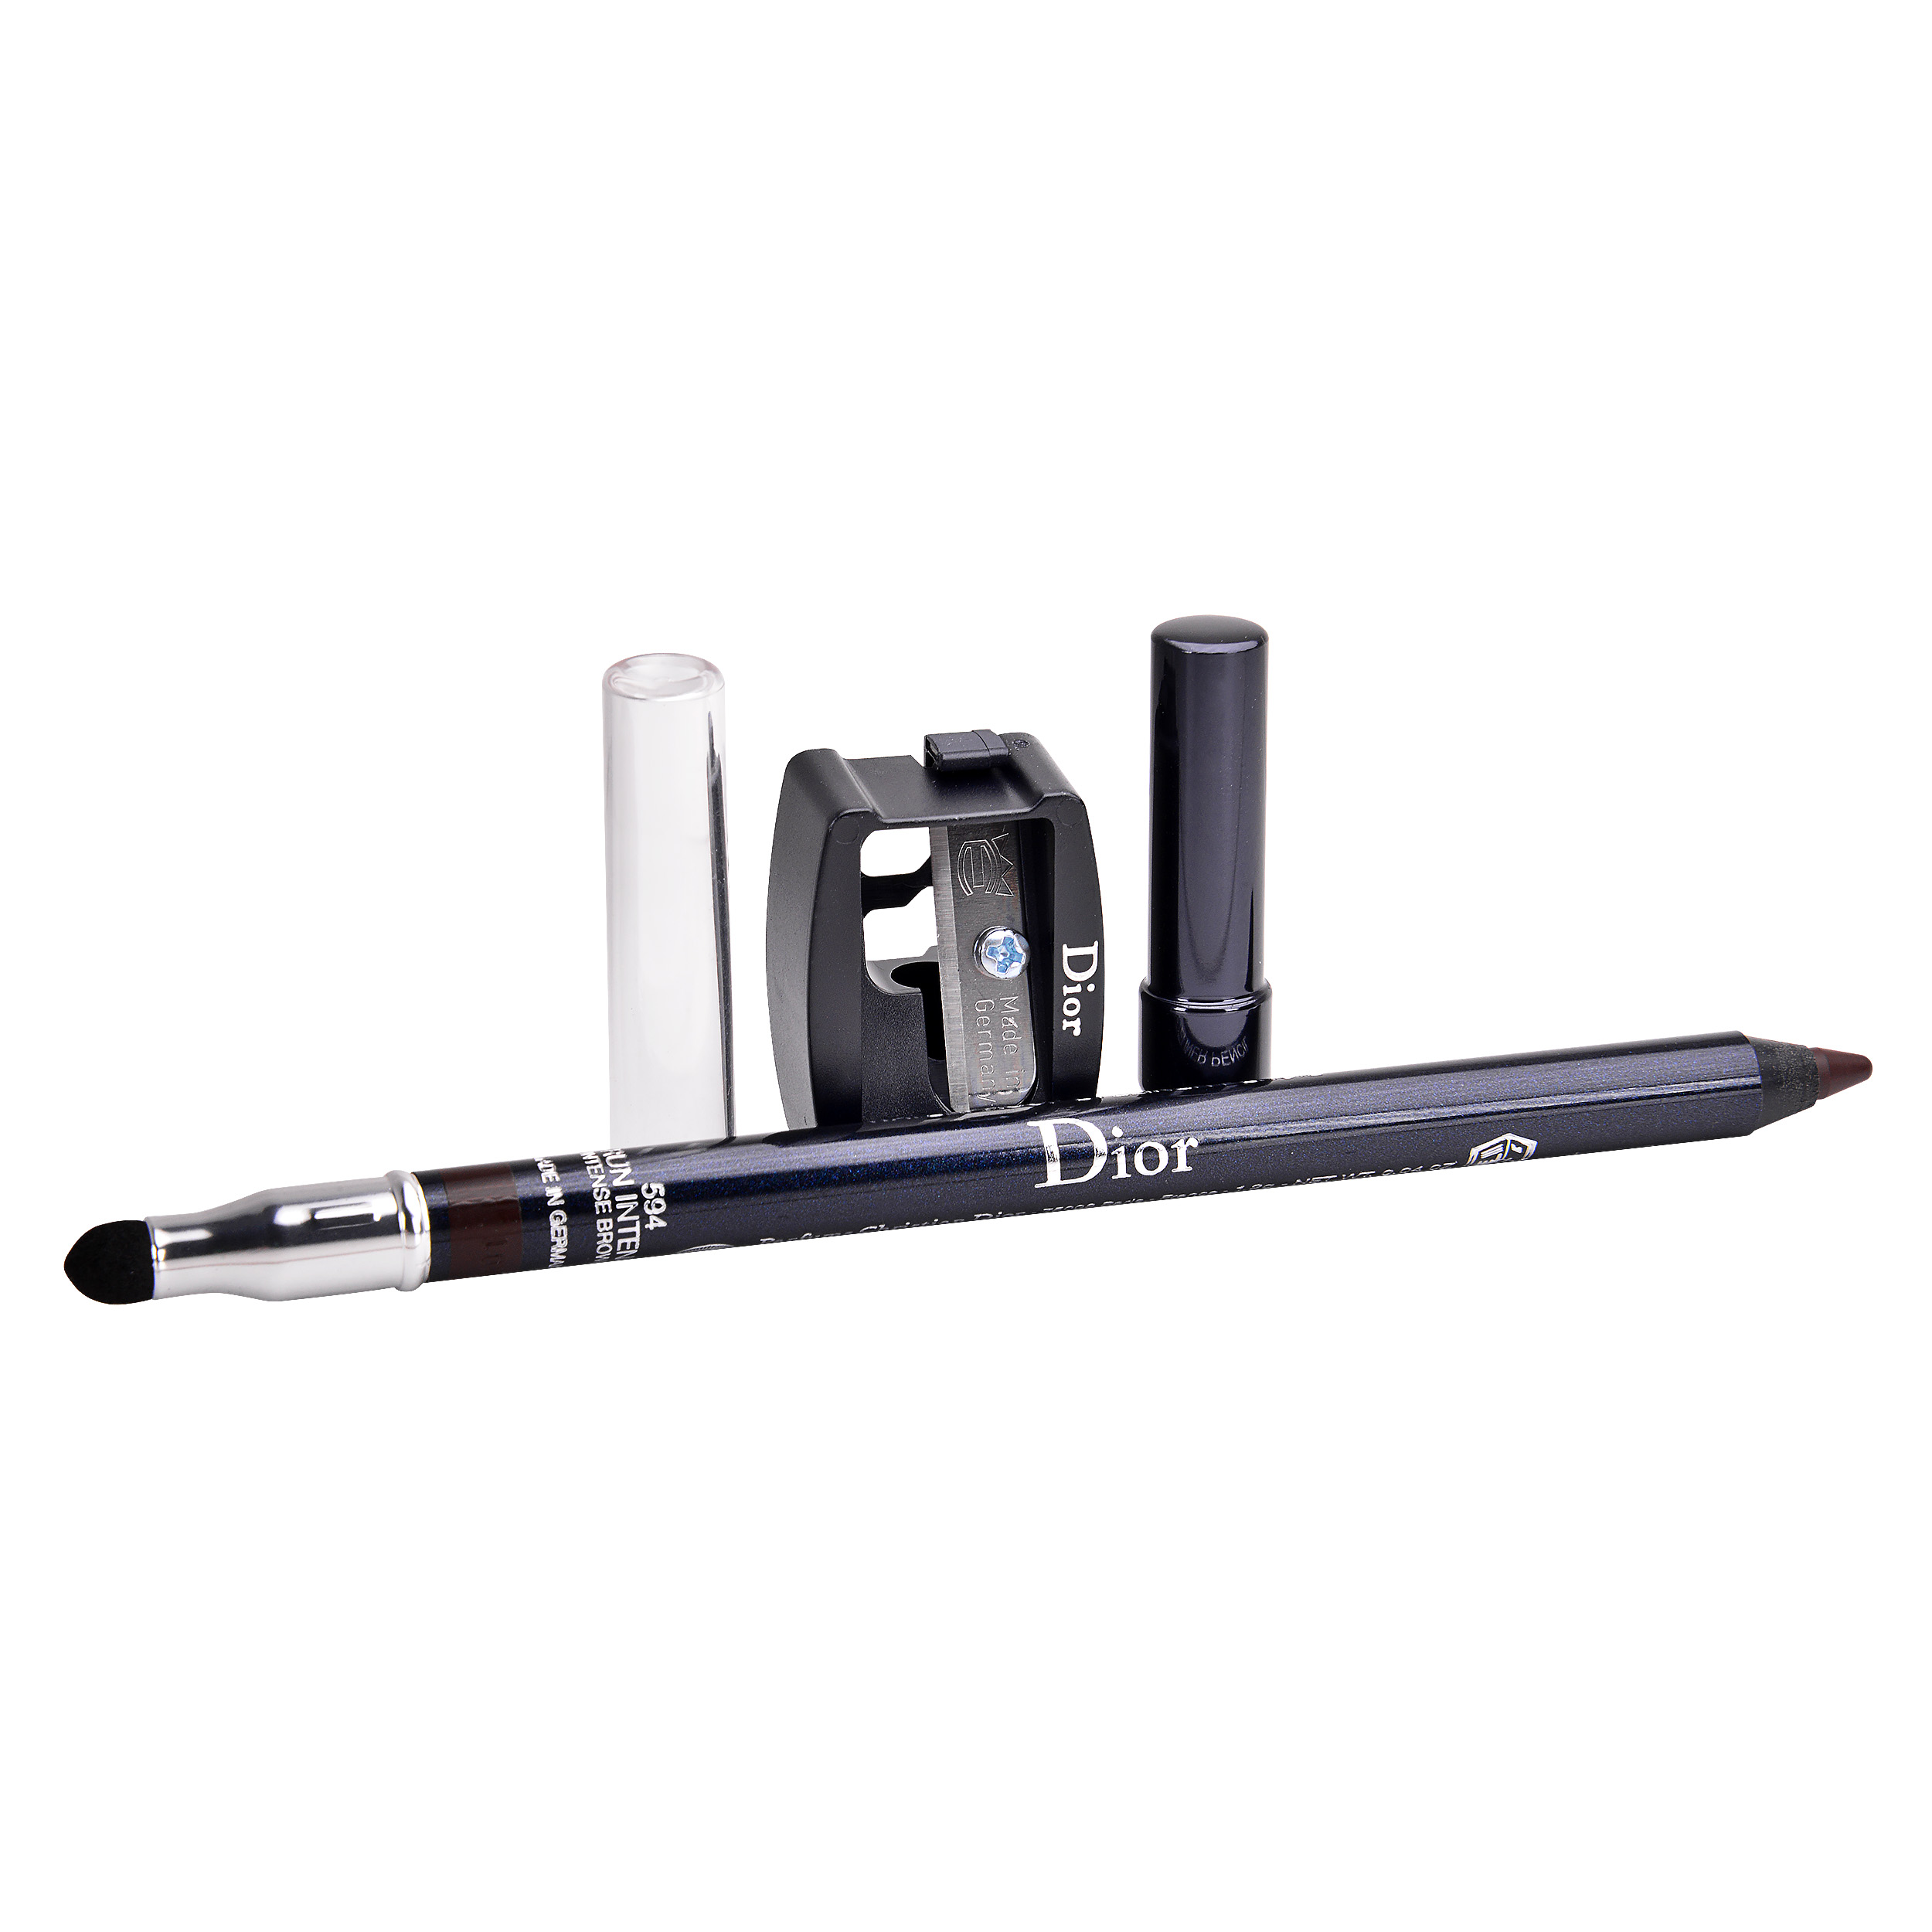 Christian Dior Long-Wear Waterproof Eyeliner Pencil 594 Intense Brown, 0.04oz, 1.2g